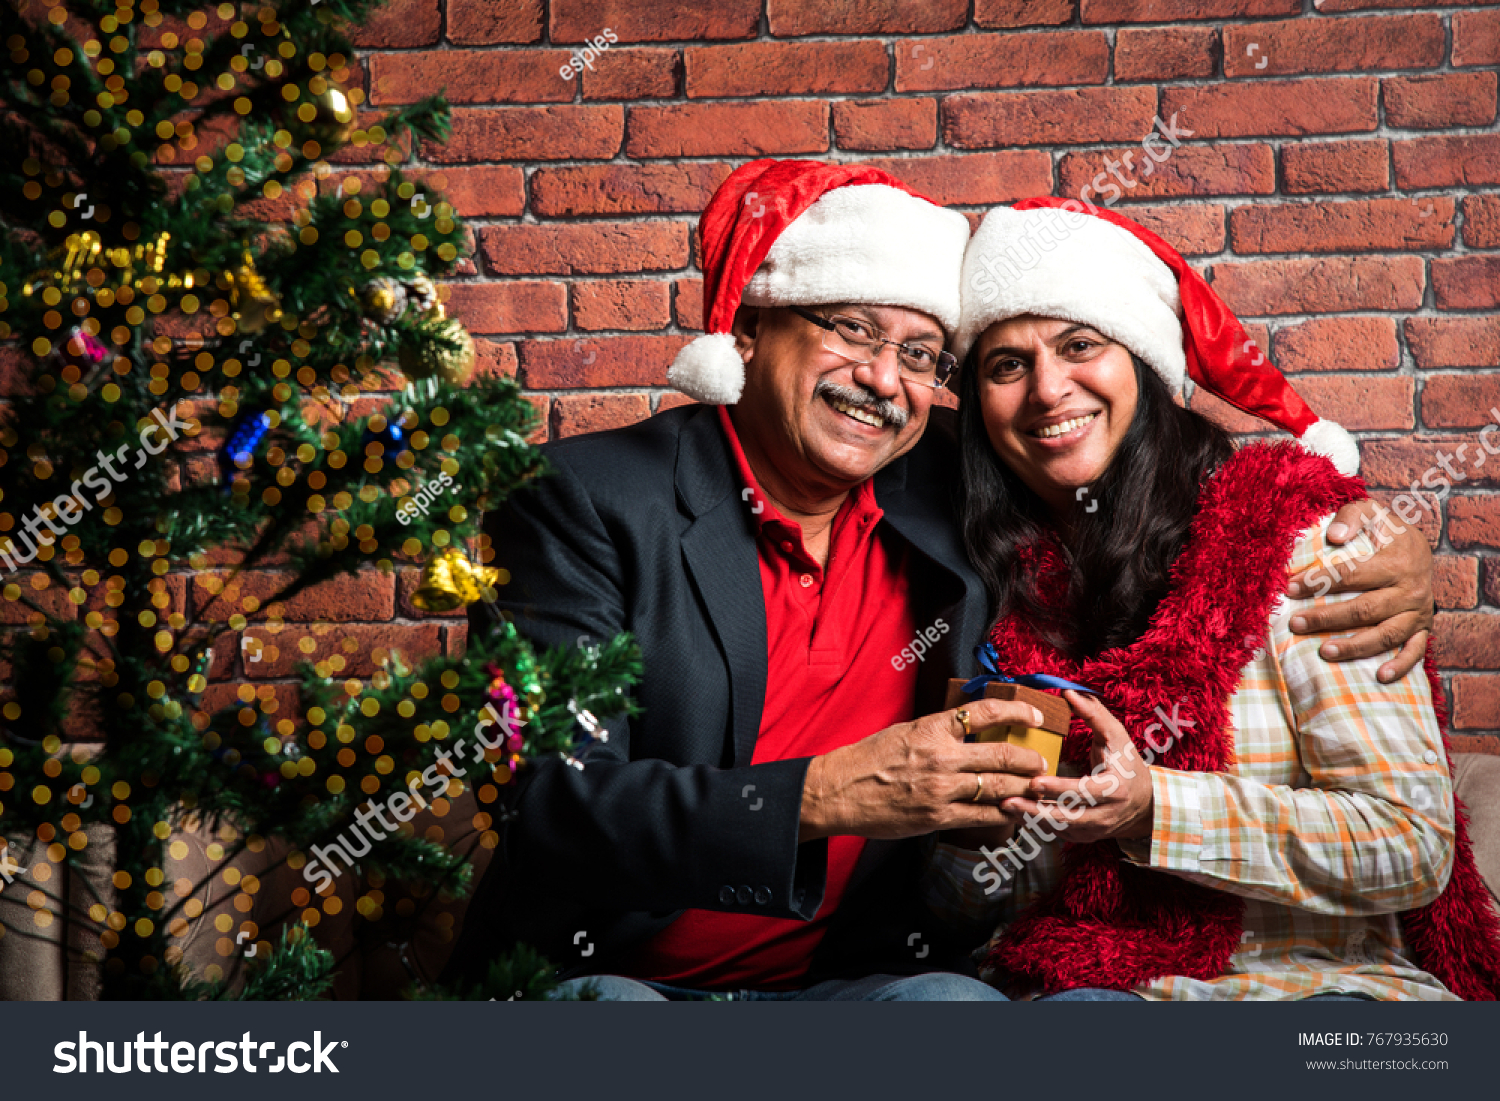 senior indianasion couple celebrating christmas with santa hat and gifts while sitting over sofa